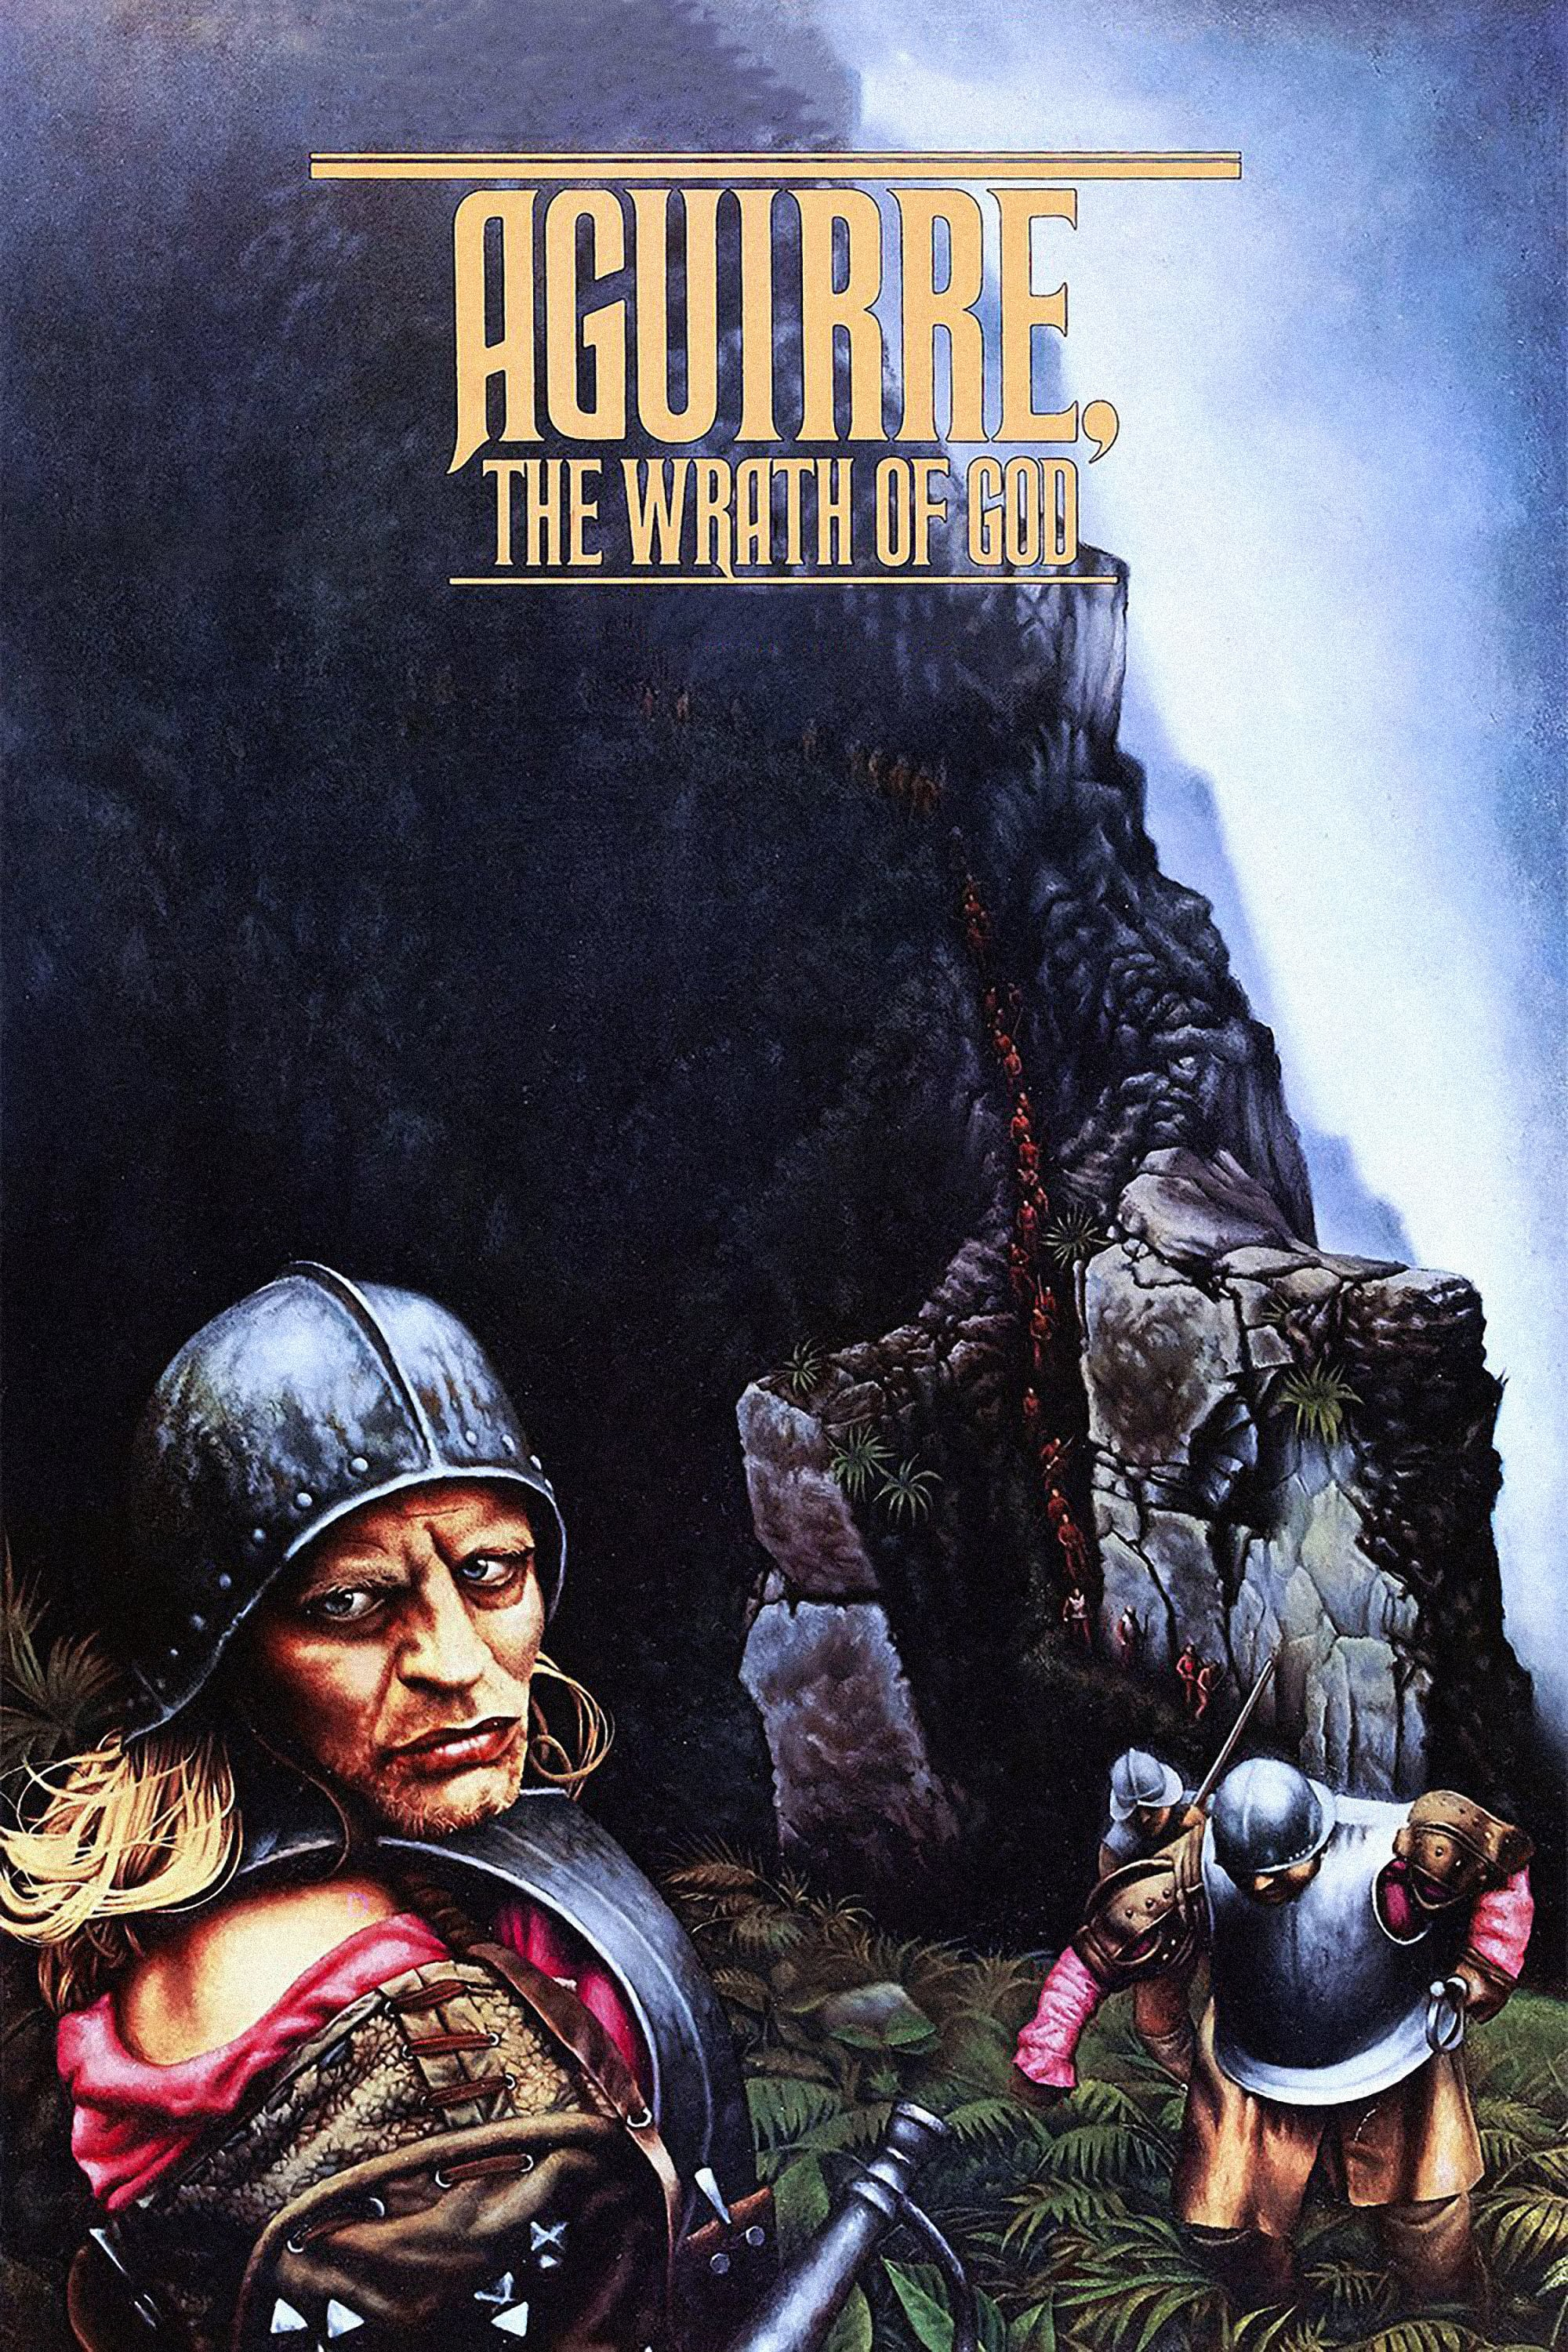 Poster for AGUIRRE, THE WRATH OF GOD